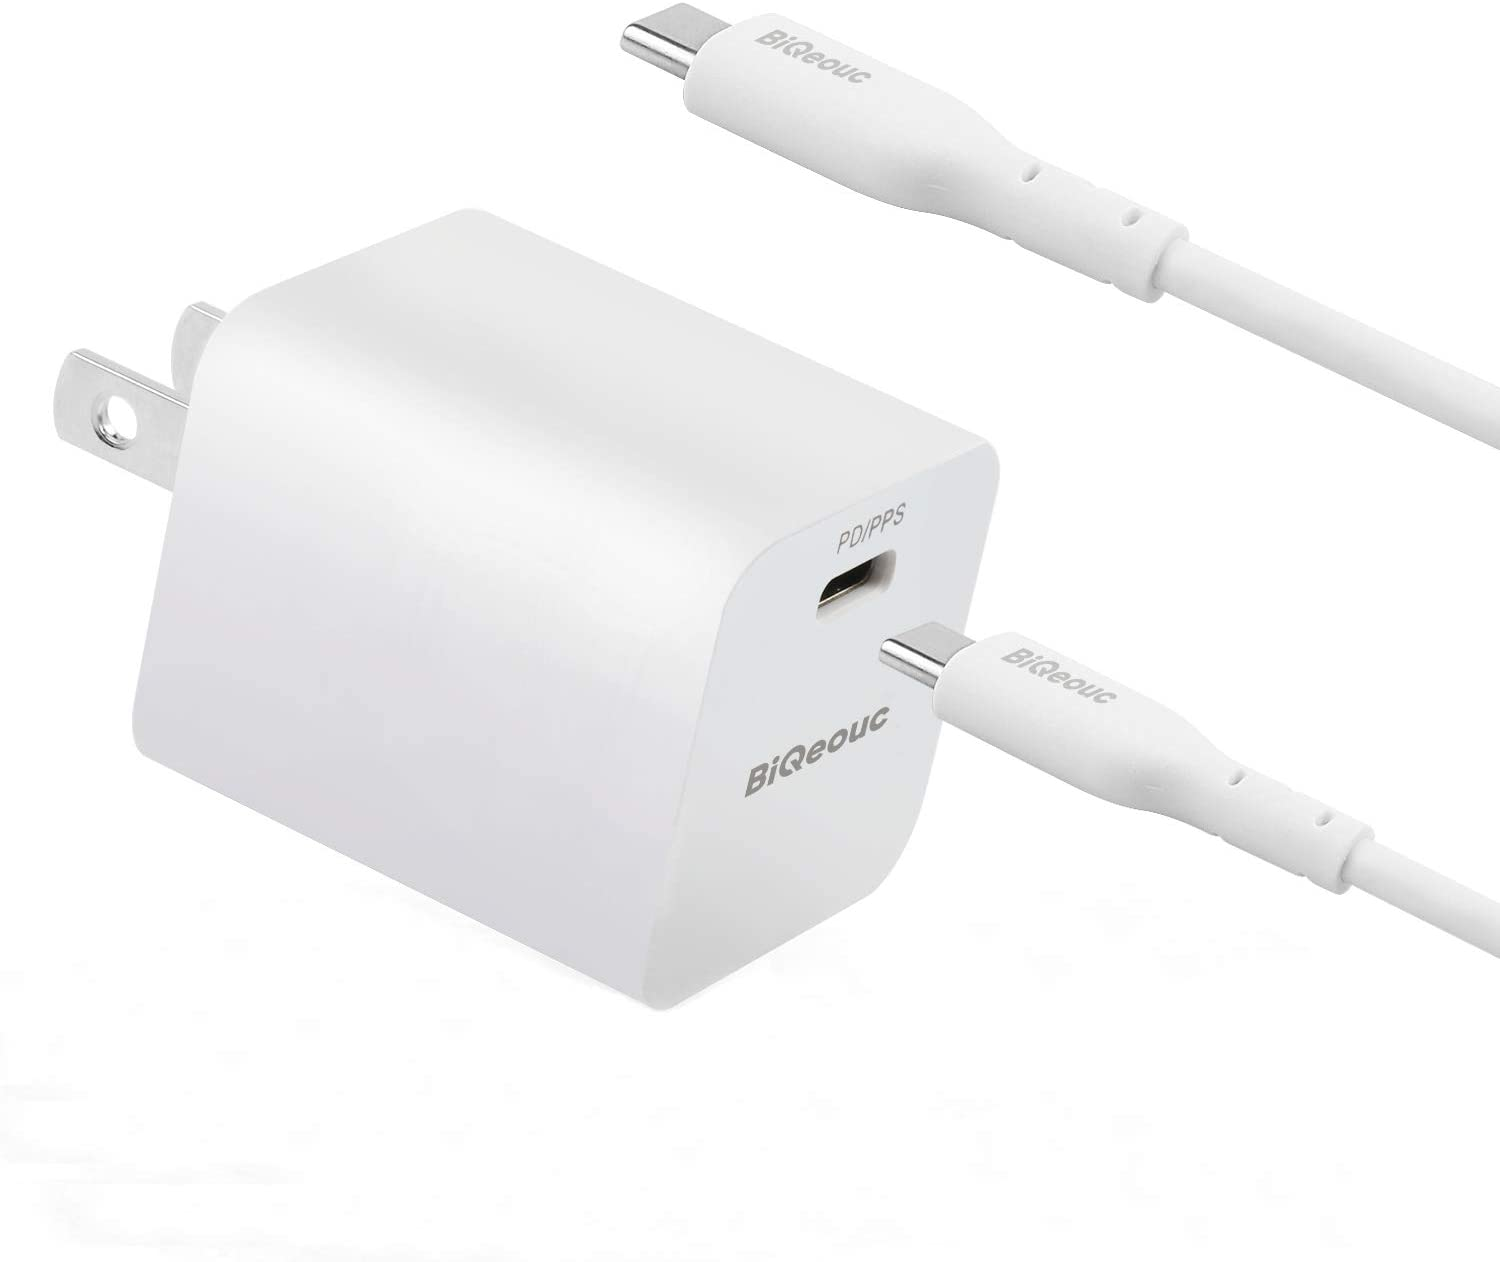 30W USB C Charger, BiQeouc PD 3.0 Wall Charger with PPS, Power Delivery Fast Charge Foldable Adapter for 13